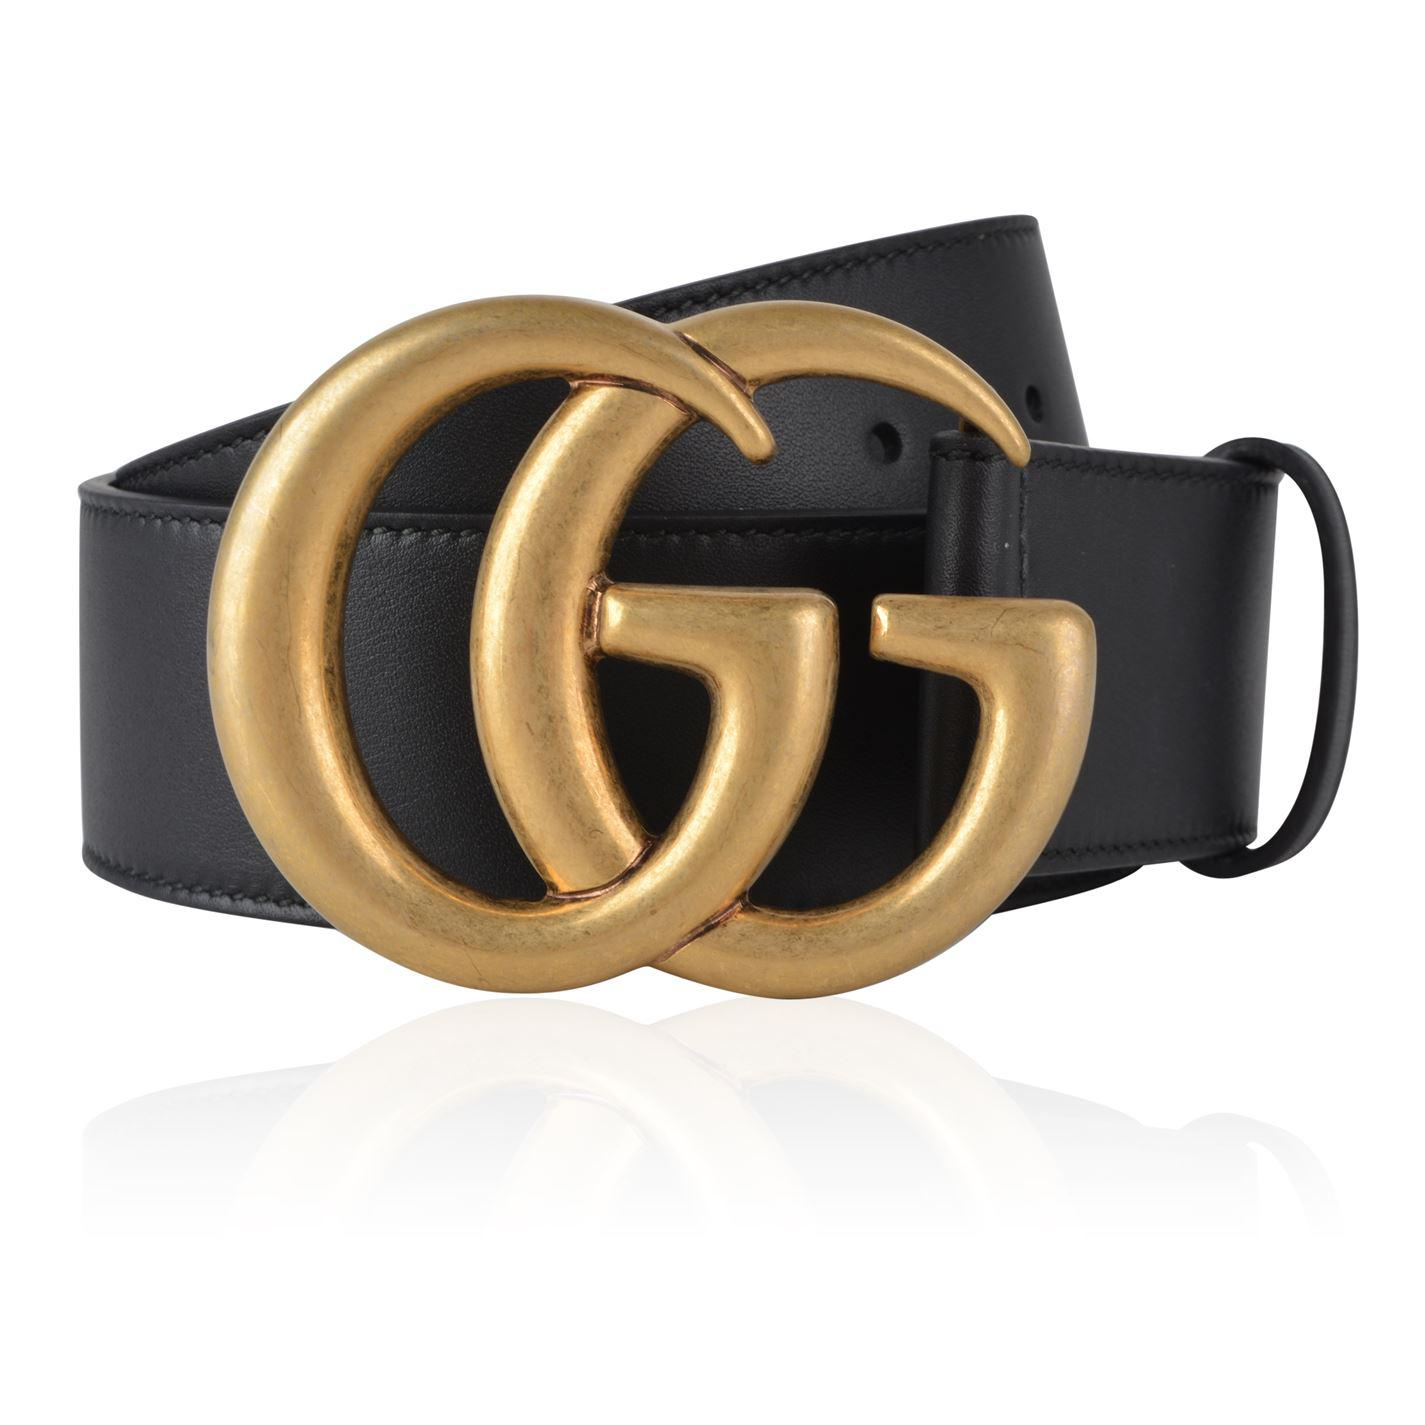 5562def3a622 Lyst - Gucci Double G Buckle Belt in Black